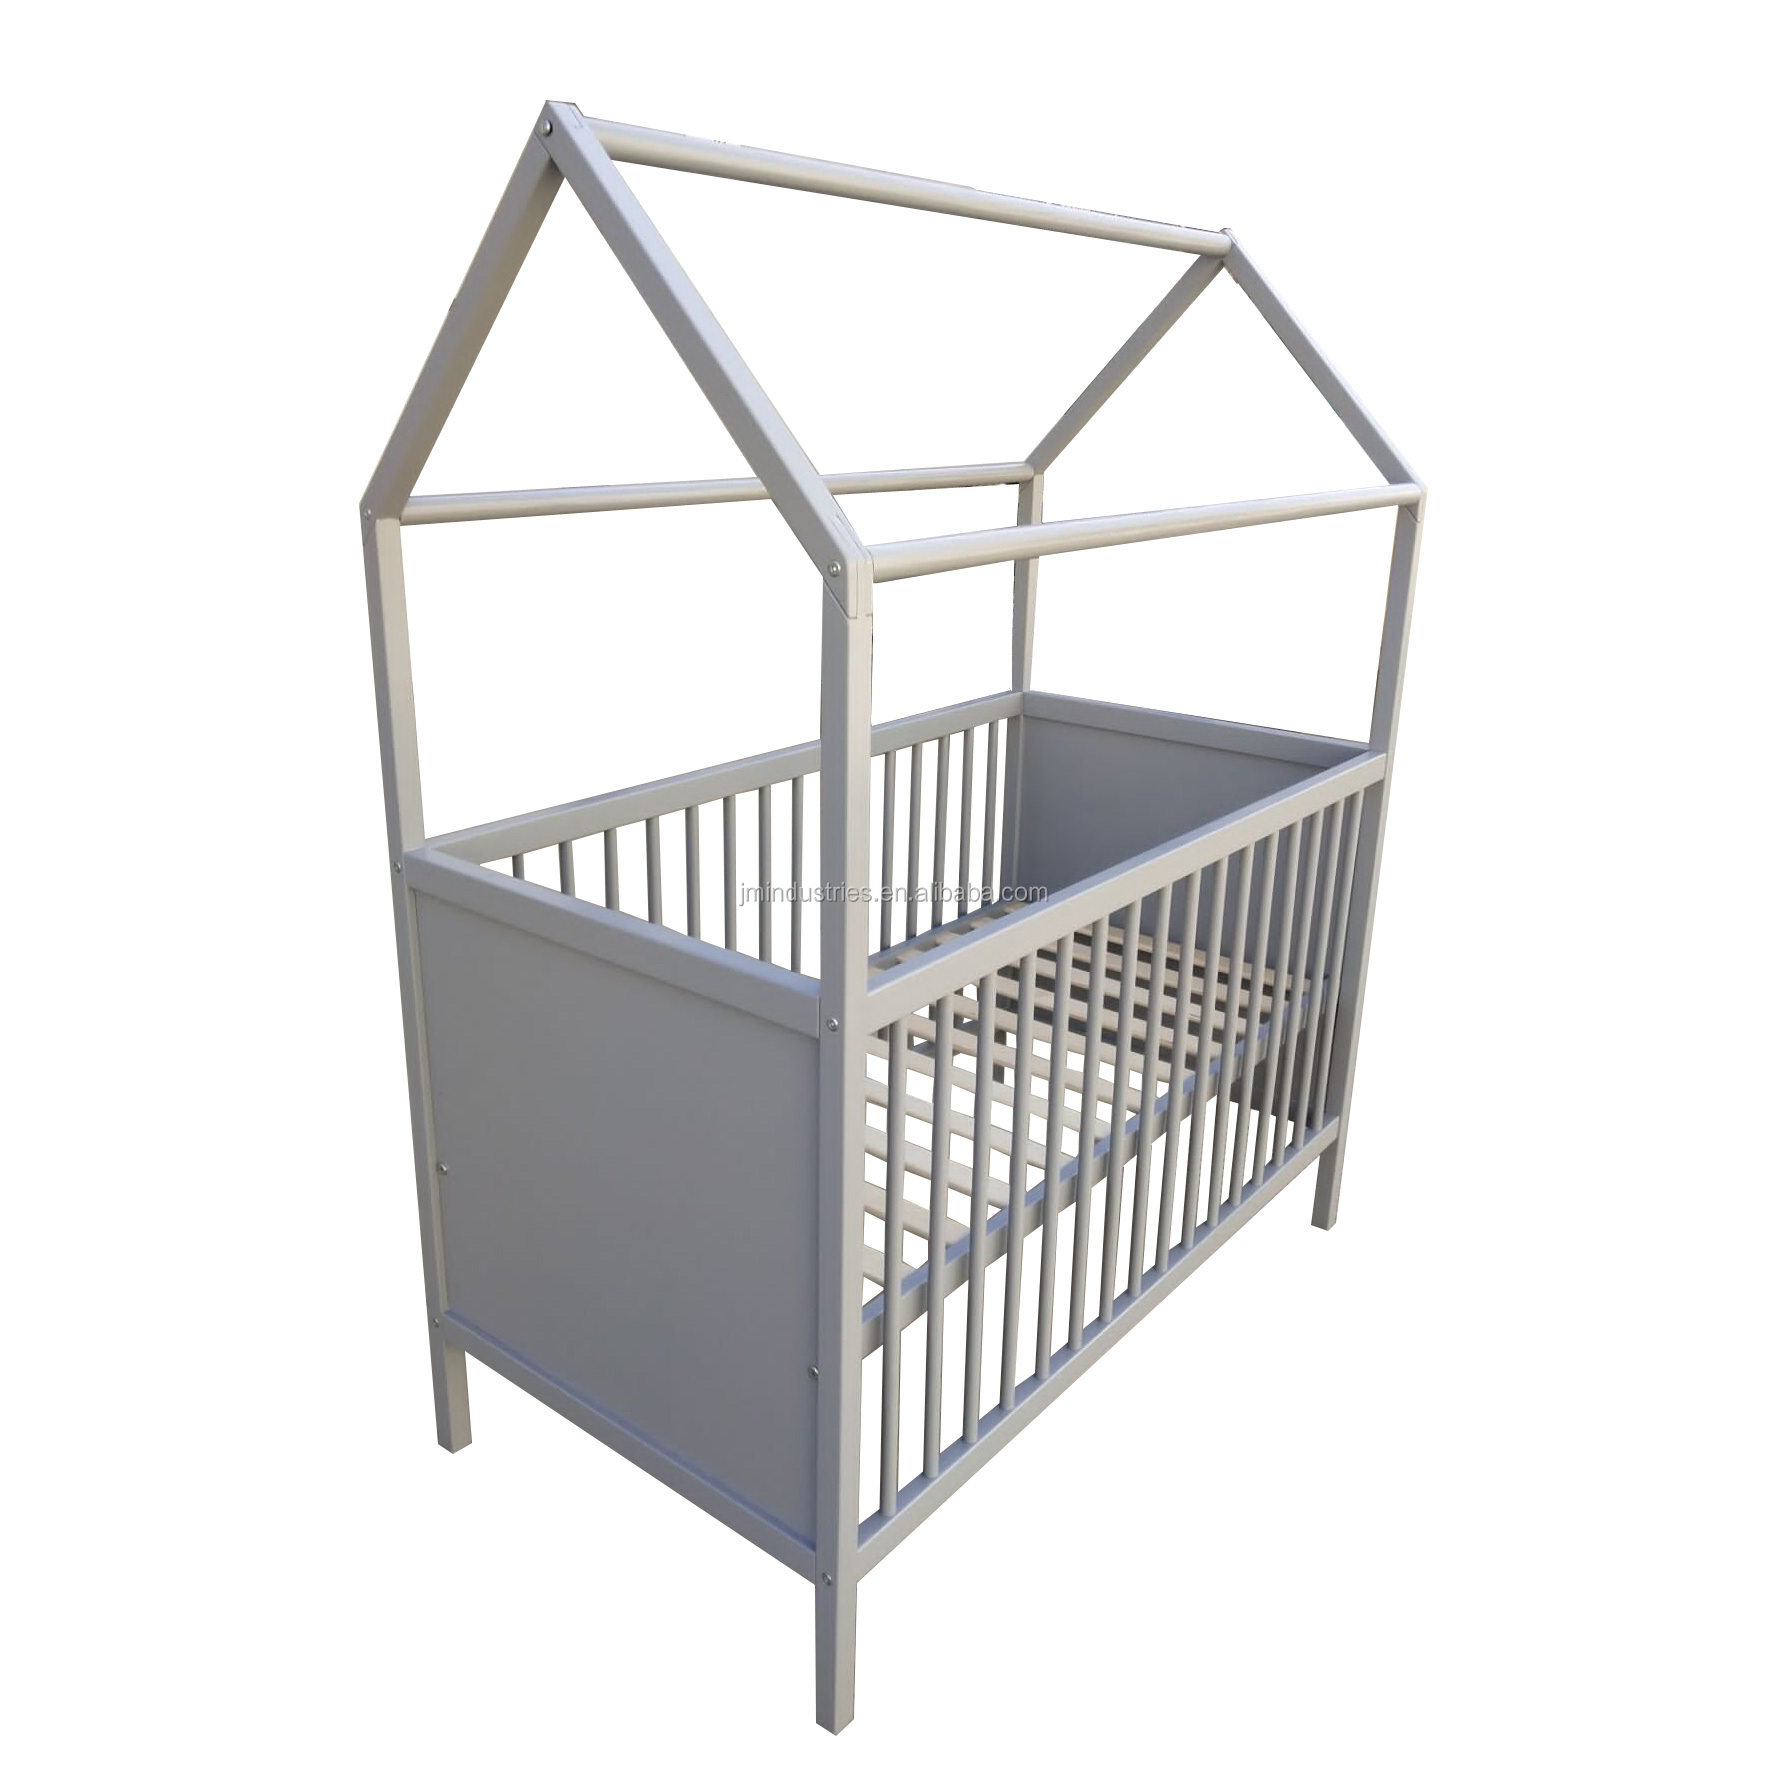 New Model Nursery Baby Cot Baby Frame Bed